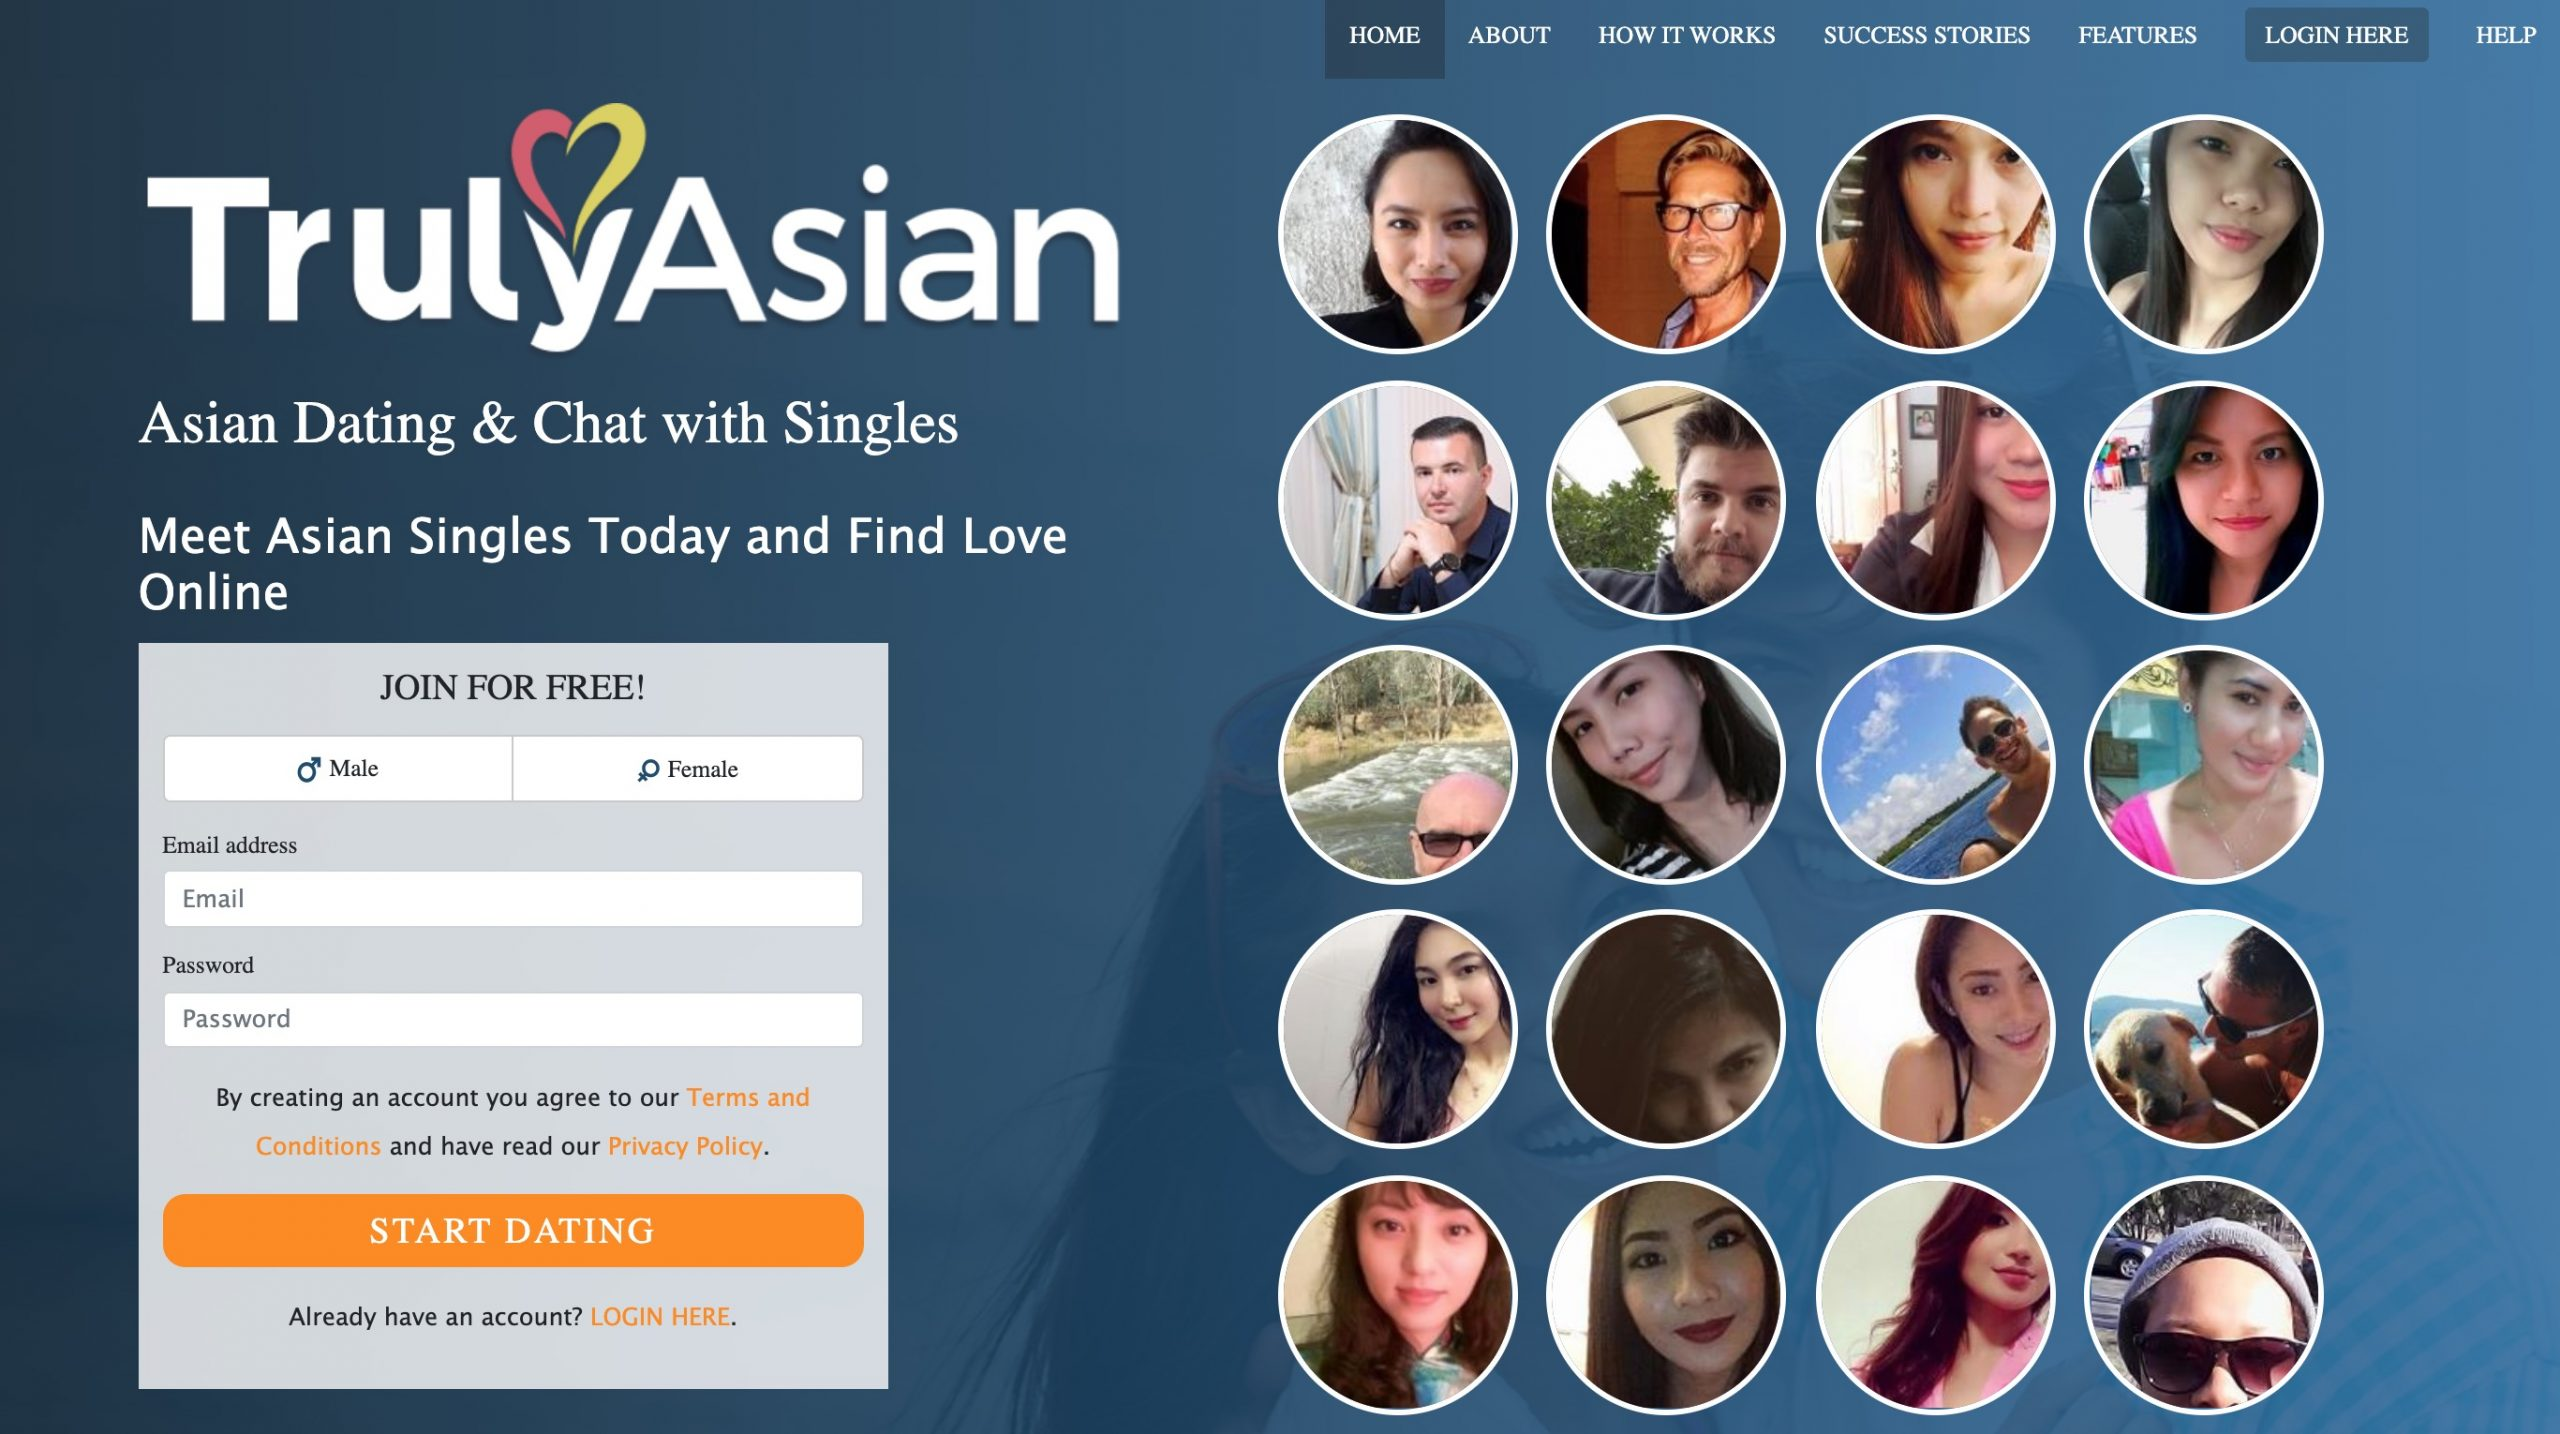 TrulyAsian main page